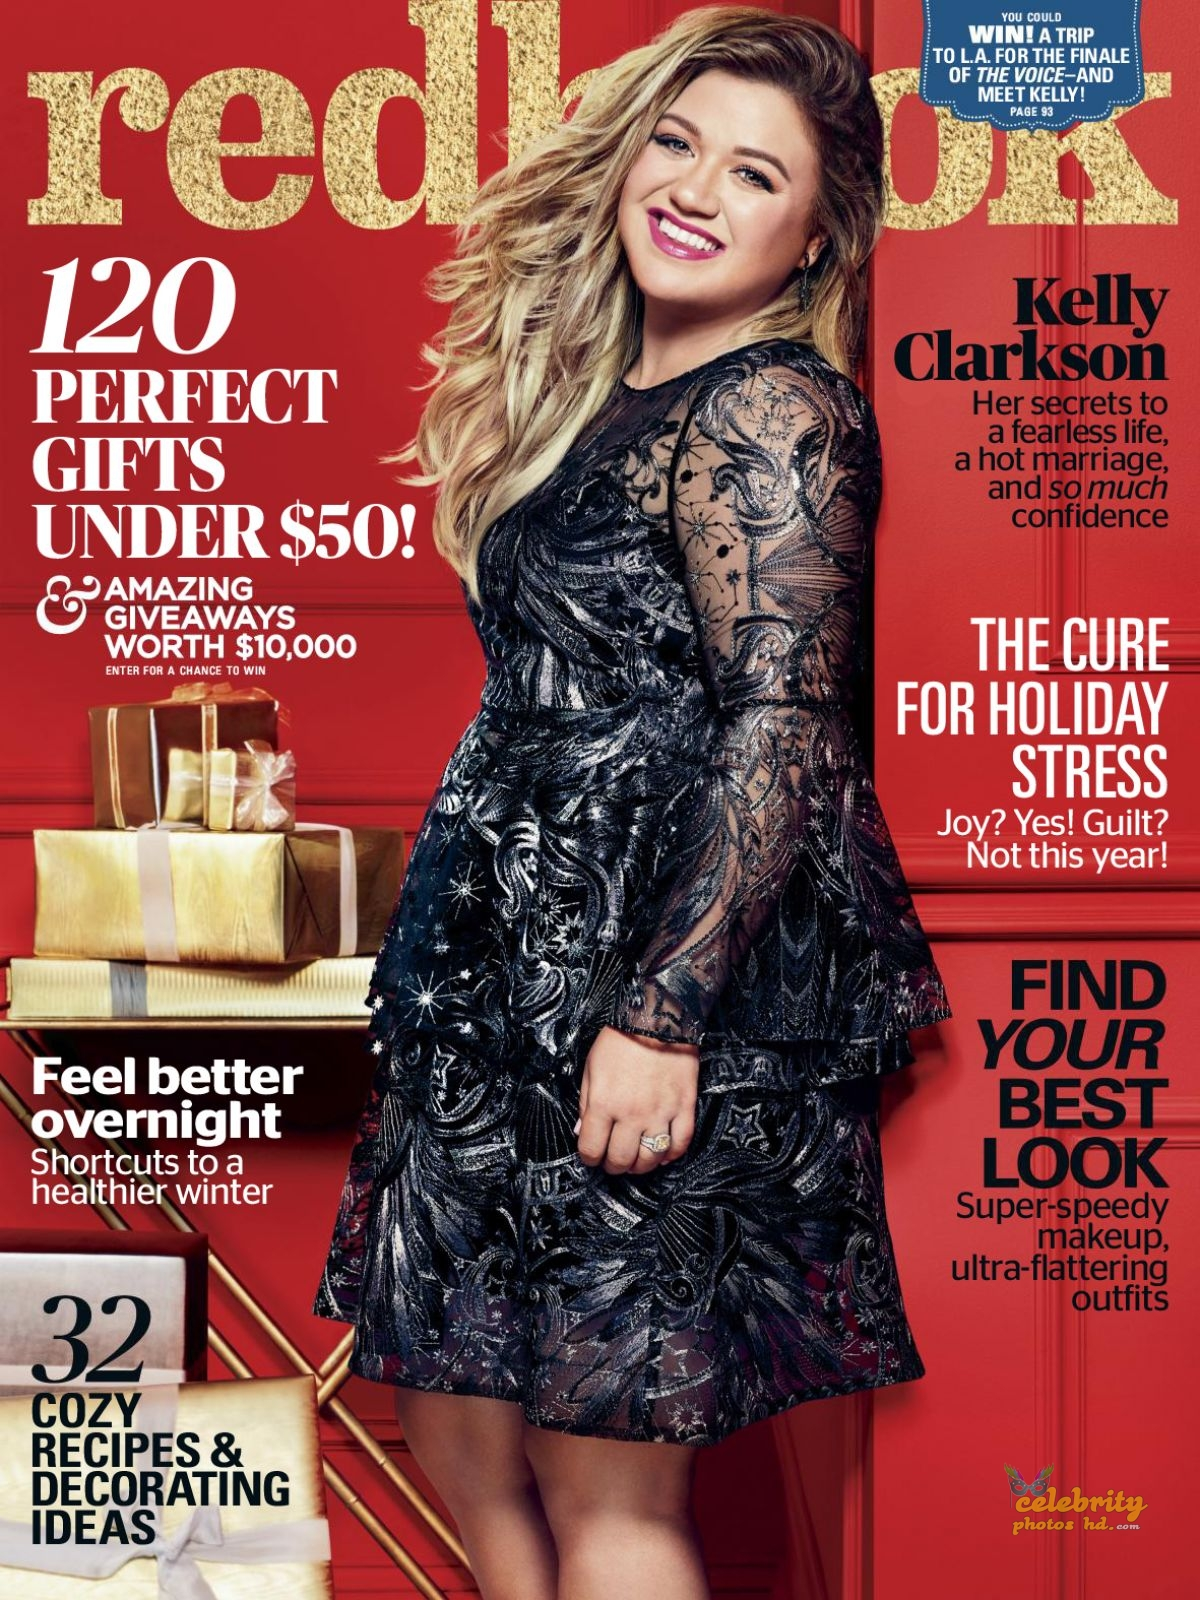 KELLY CLARKSON in Redbook Magazine Photoshoot (2)